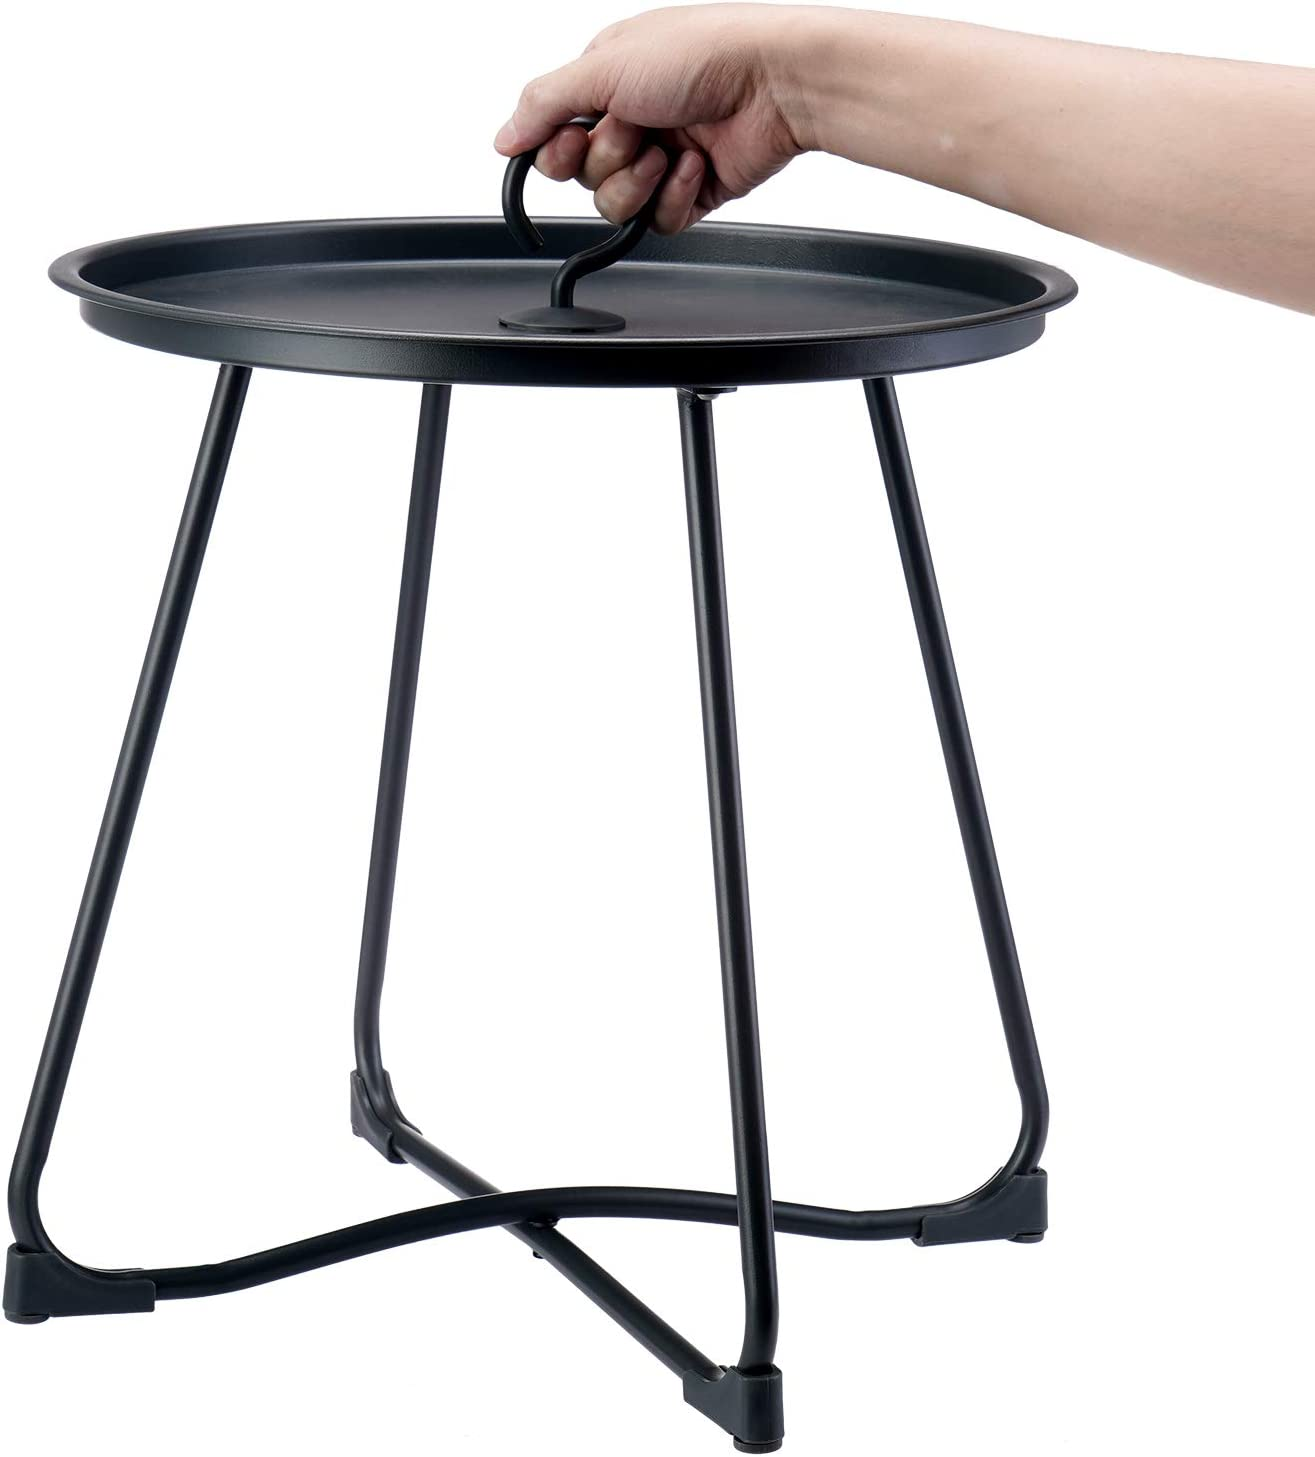 Maxking Outdoor Side Table Lightweight Round Outdoor End Table Weather Resistant Outdoor Coffee Table Perfect for Garden,Yard,BBQ,Camping -Black: Kitchen & Dining